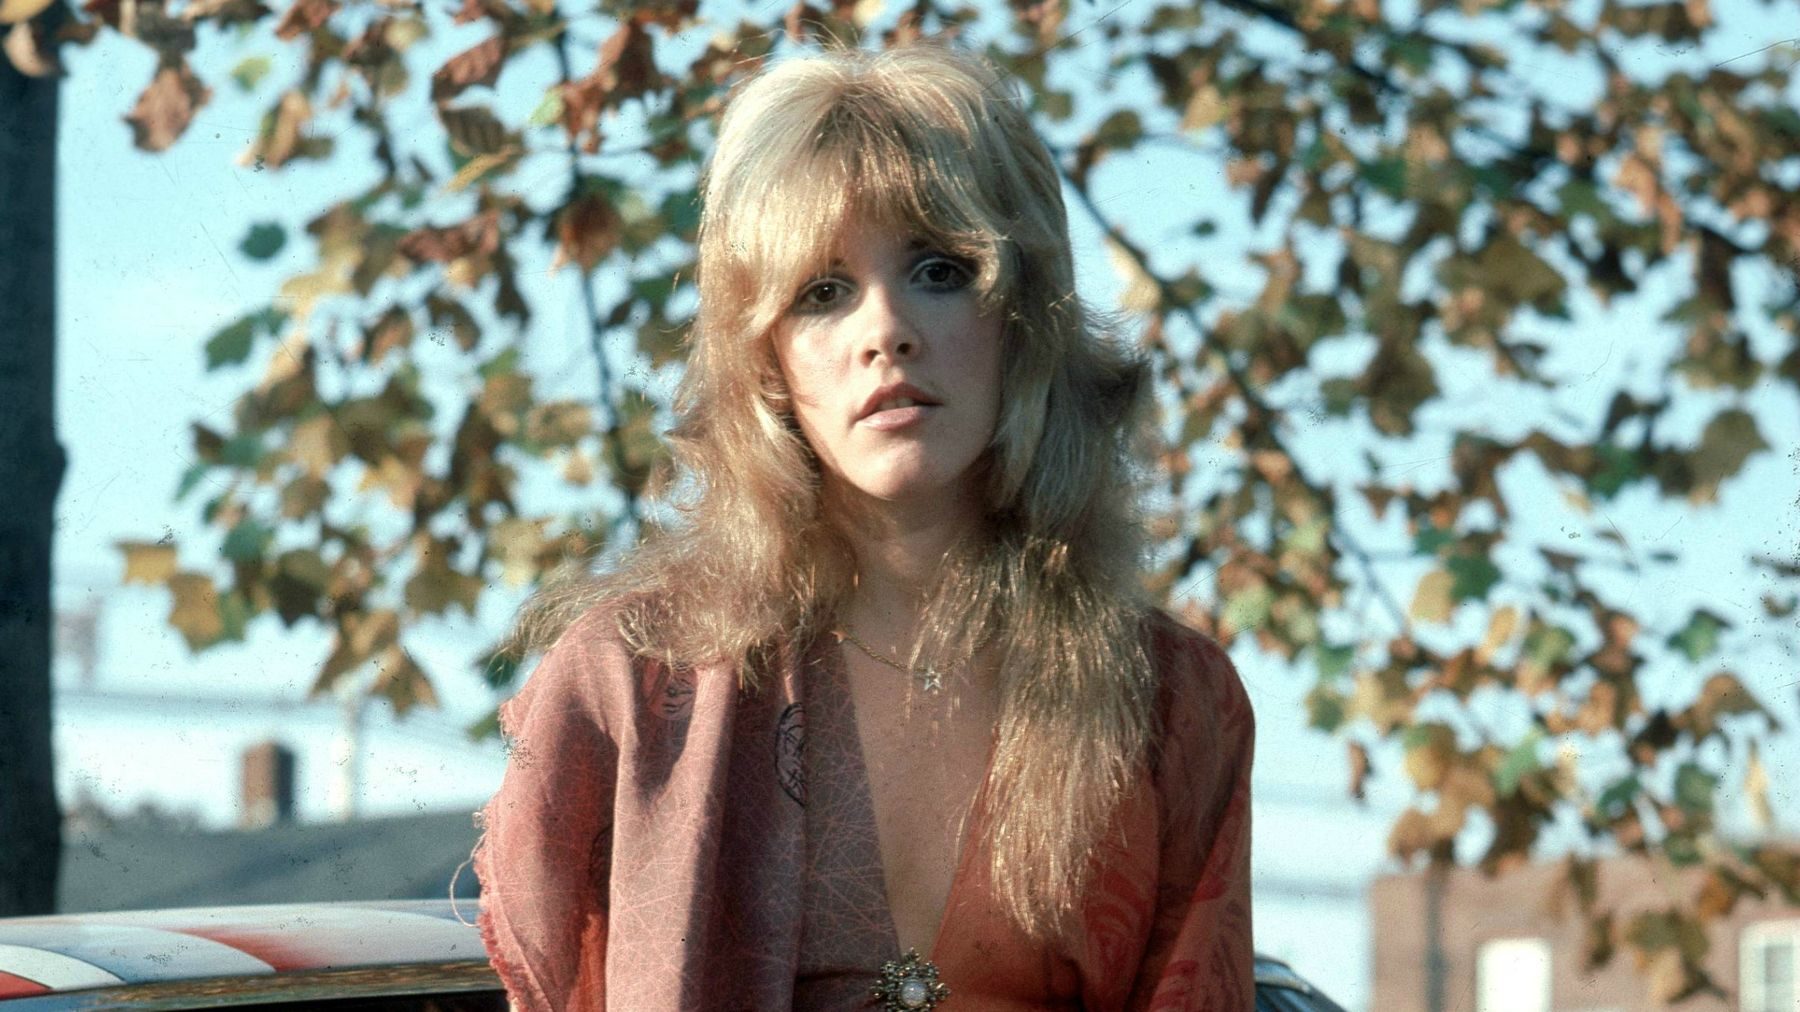 7d5a868c2 To celebrate the singer's 69th birthday, one Grazia writer decodes the  enduring appeal of Stevie Nicks' wardrobe.